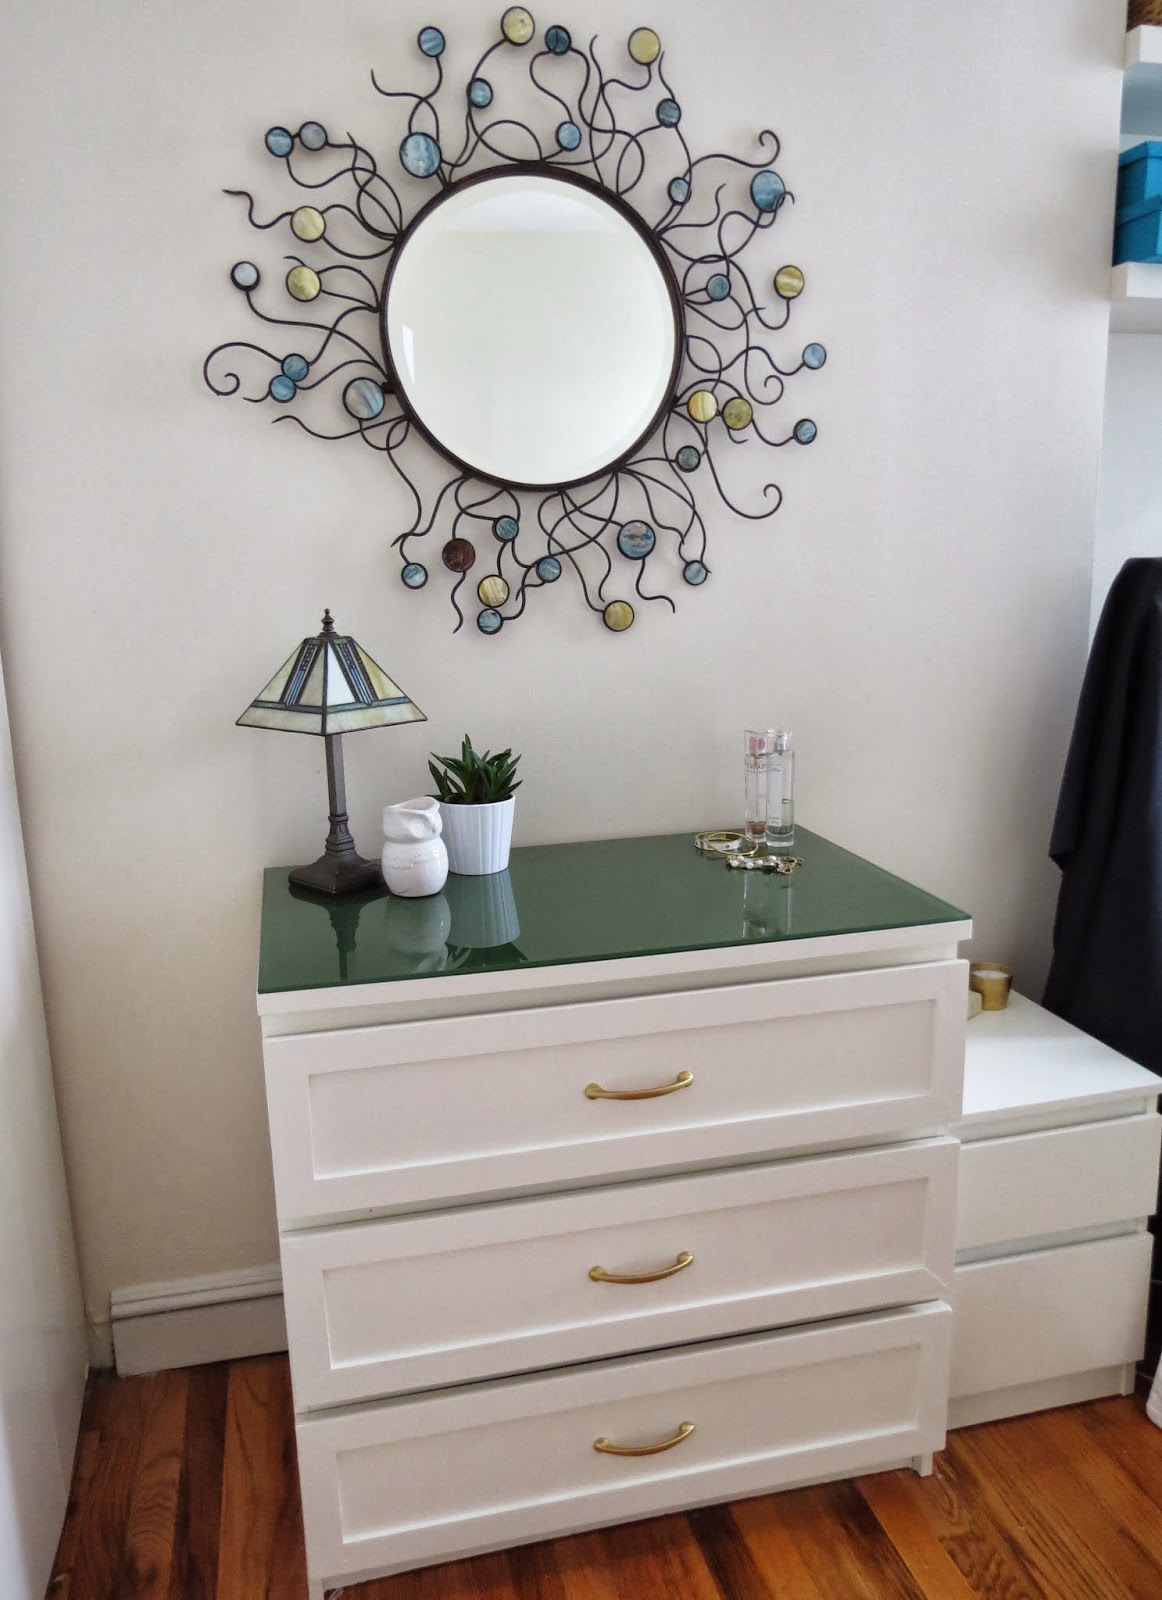 here 39 s another angle where you can see a hint of some other elements. Ikea Malm Dresser Hack   Home Design